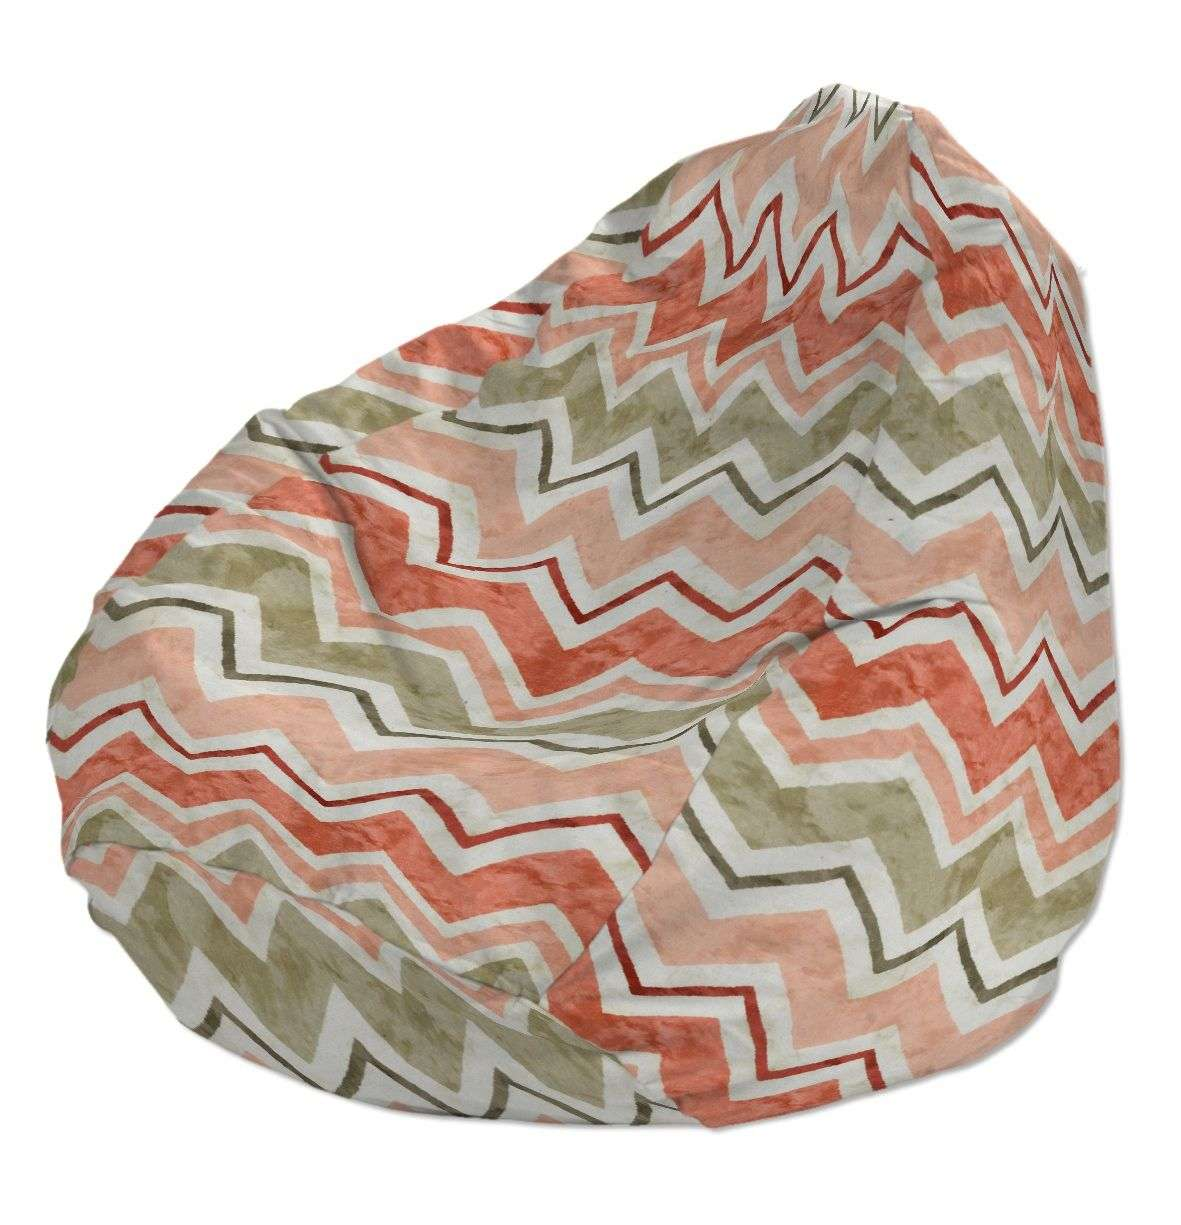 Beanbag Ø50 x 85 cm (20 x 33,5 inch) in collection Acapulco, fabric: 141-40